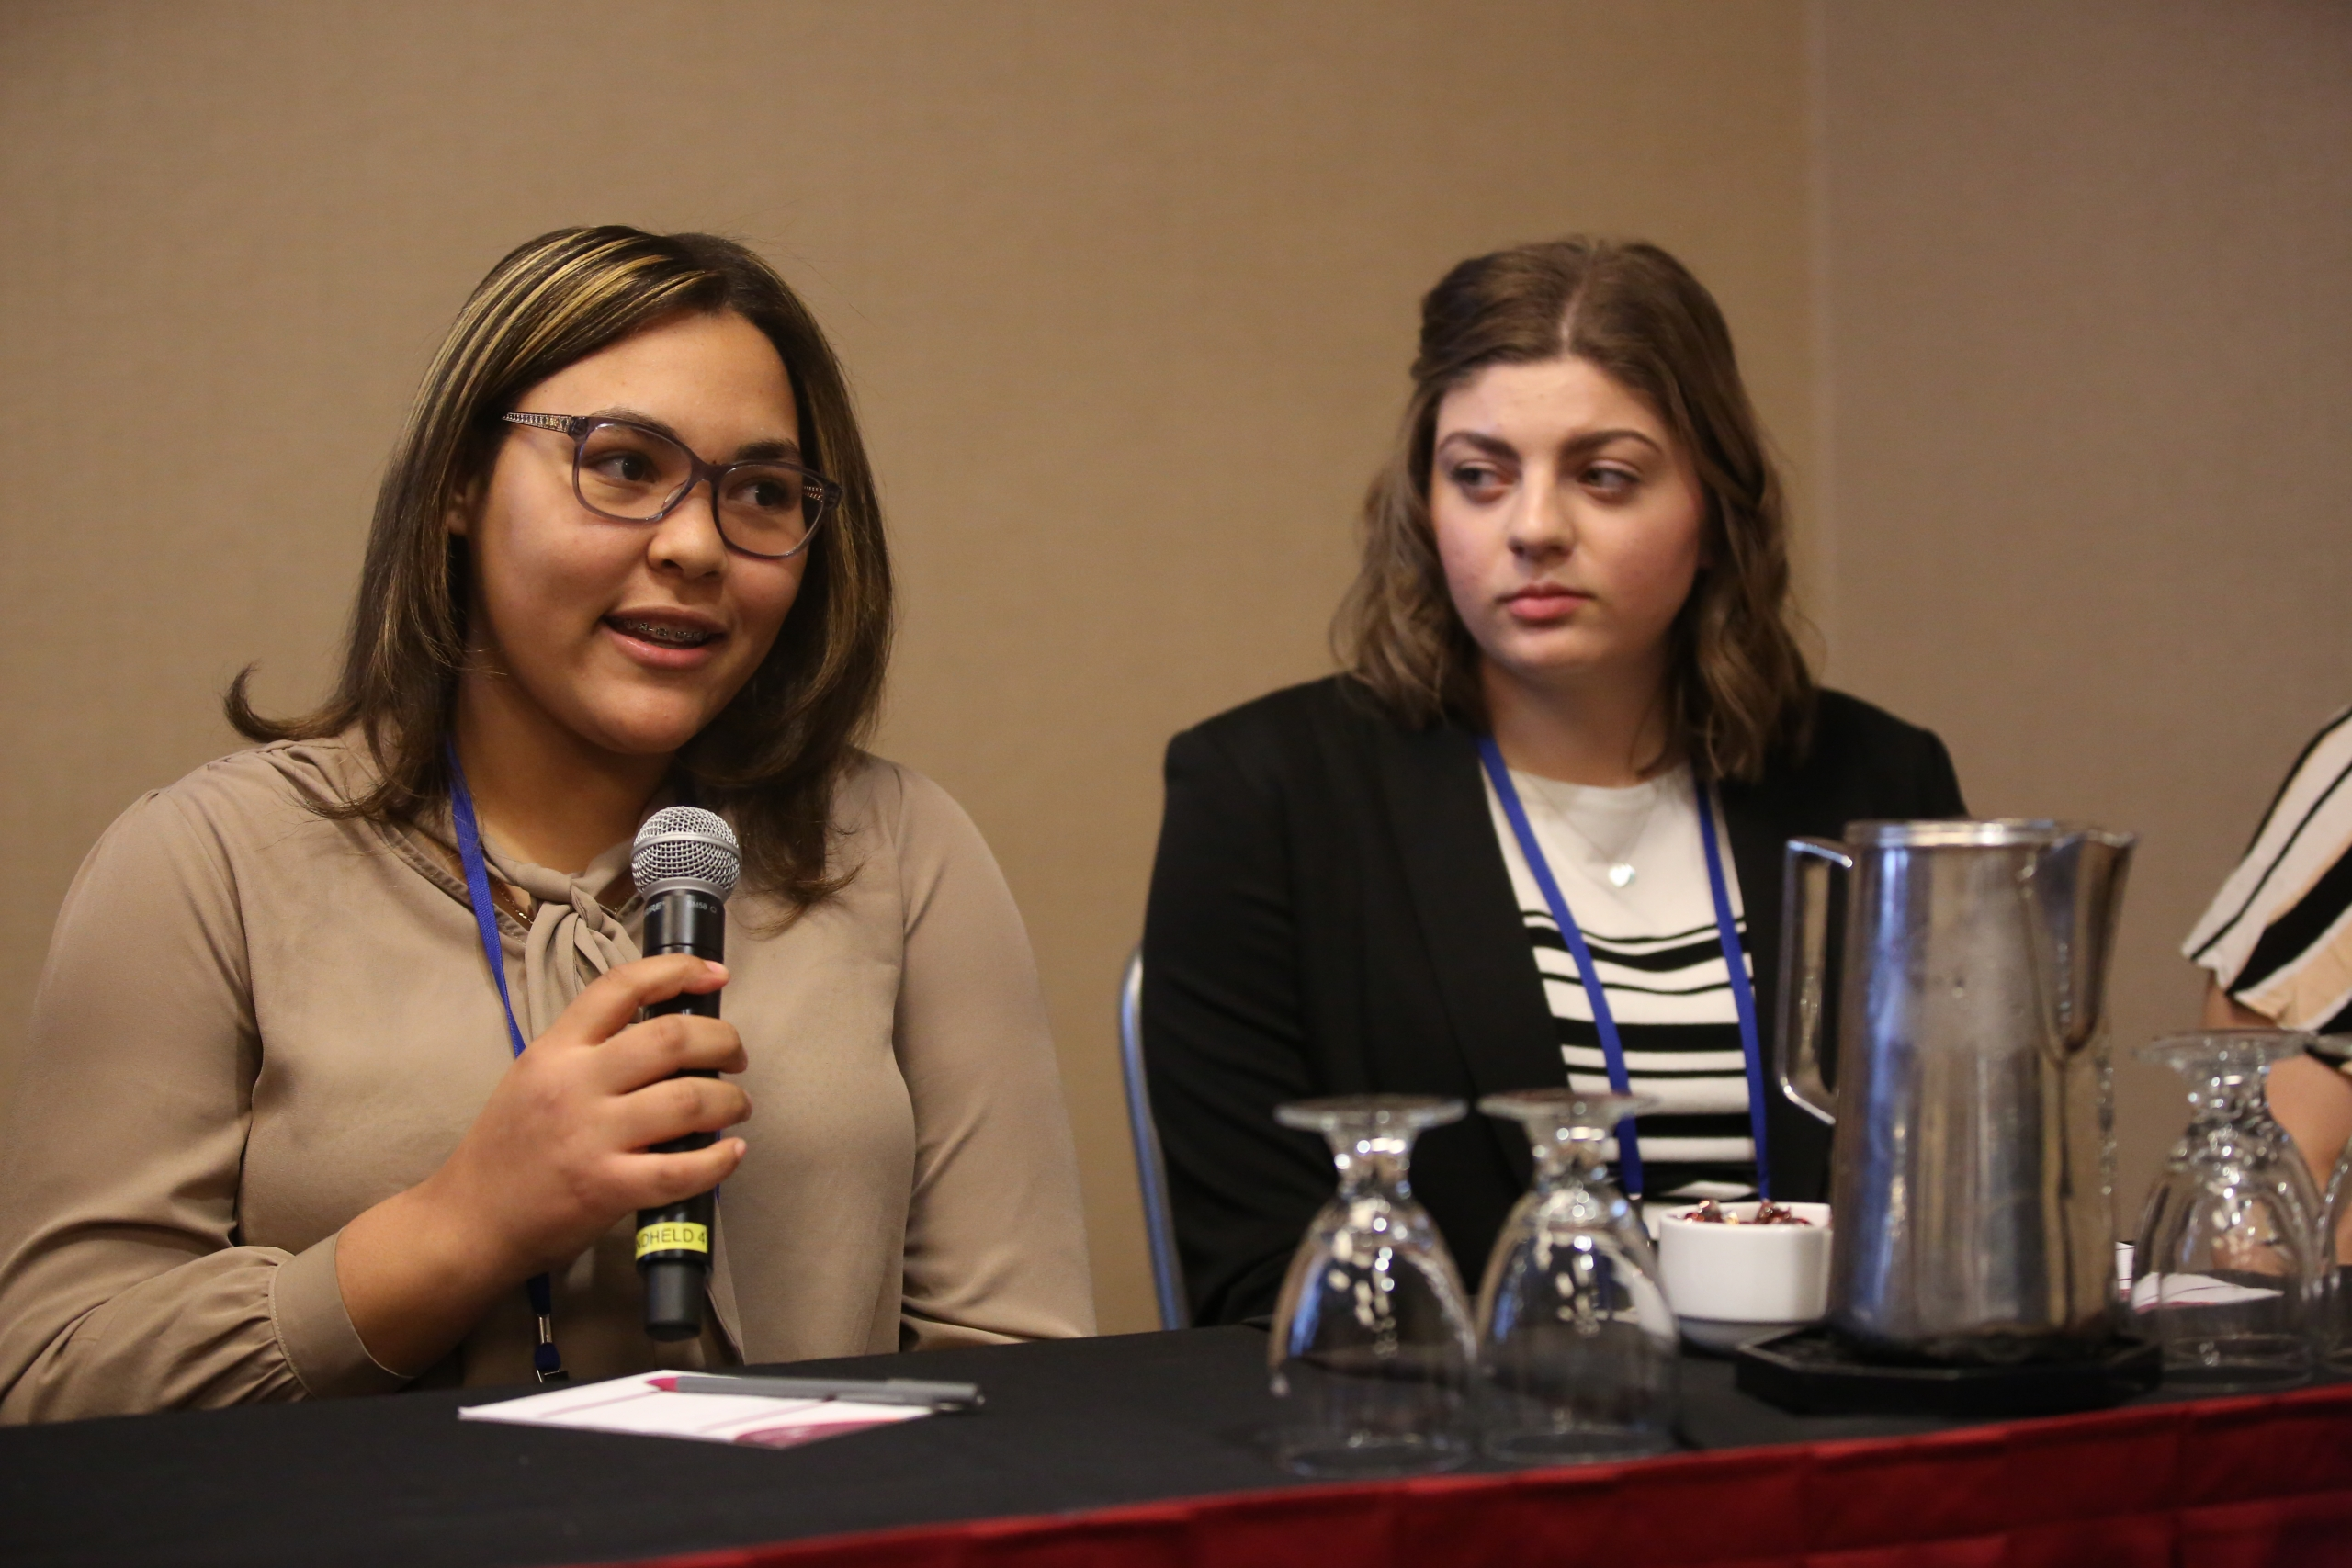 Two women sit behind a table. One holds a microphone